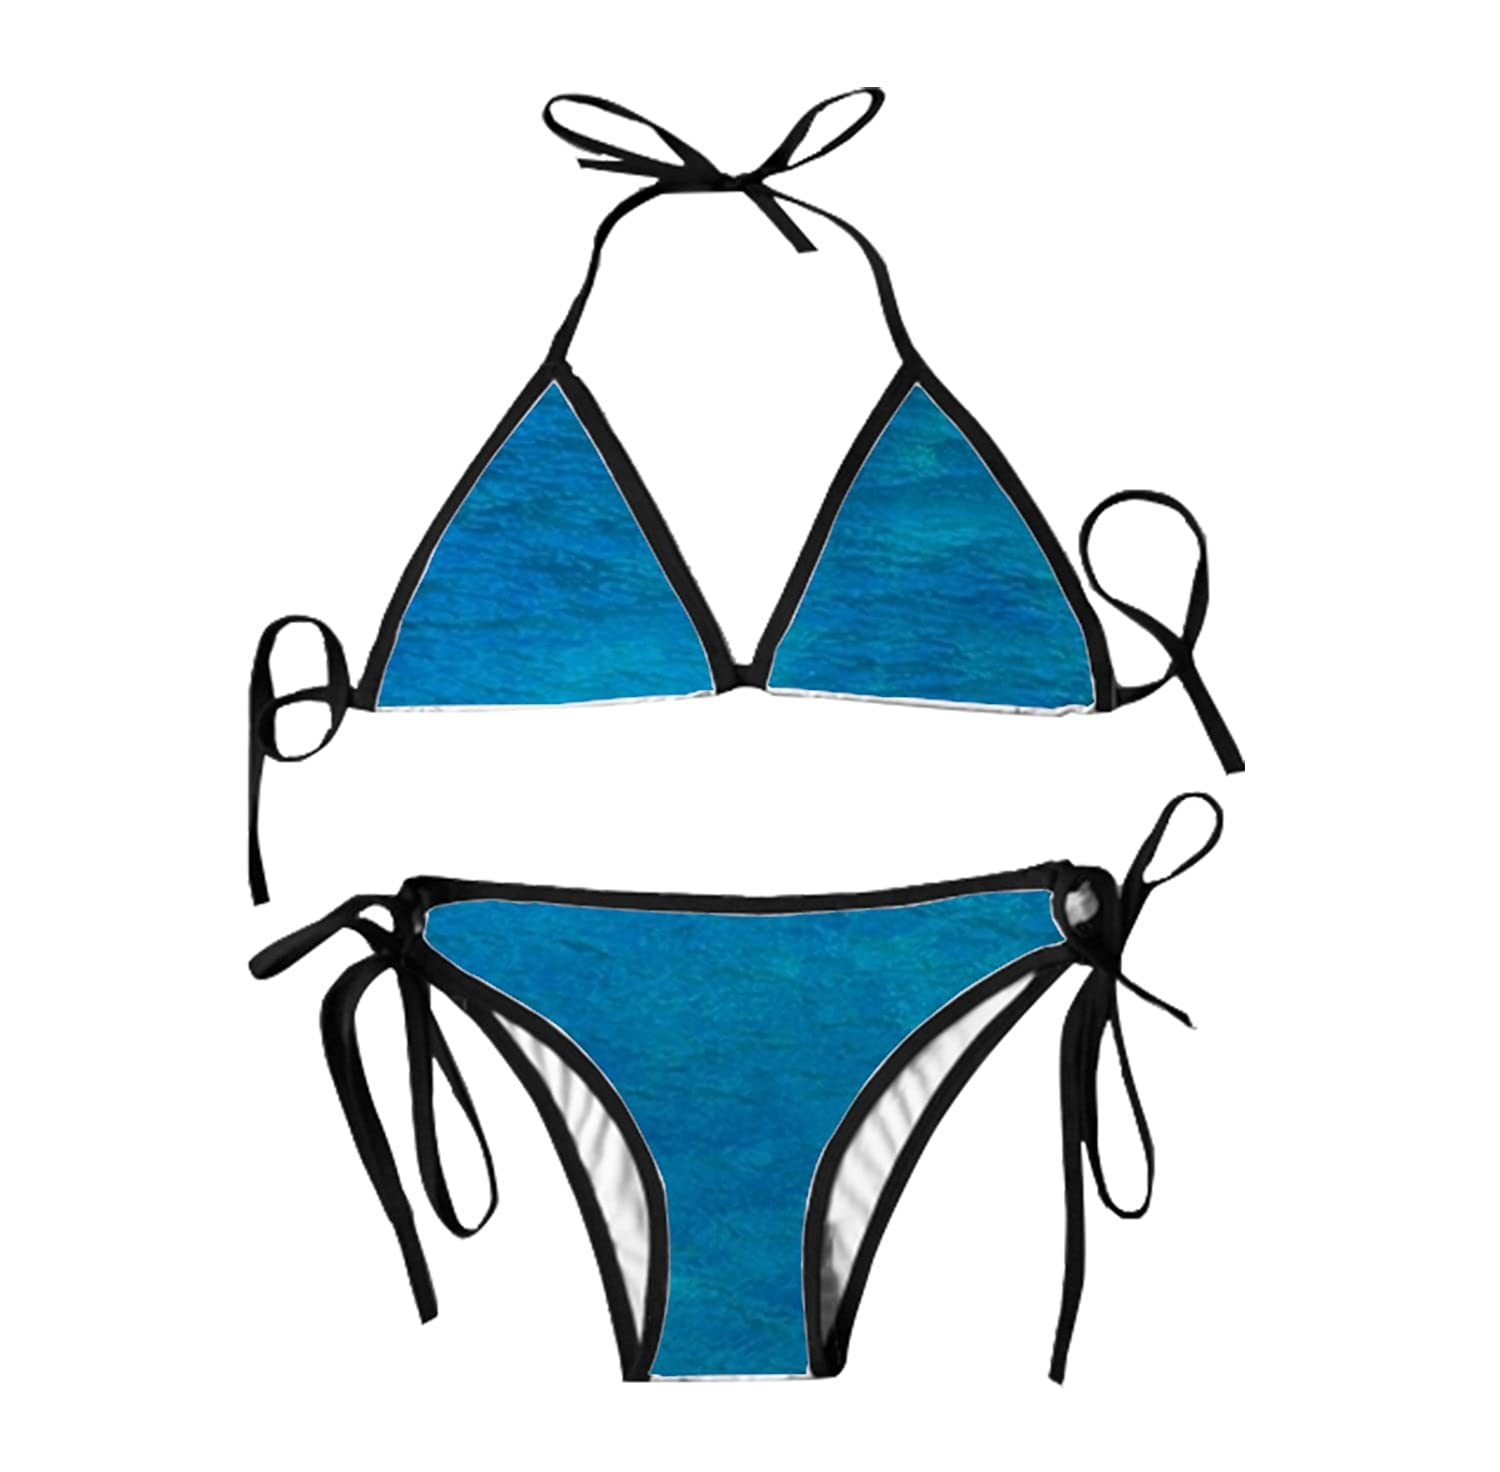 29a1f0f676 Amazon.com: Womens Bikini Set Sexy Thong Triangle Top Set Swimsuit Beach  Adorable Animal Animal Portrait Swimwear Solid for Women: Clothing